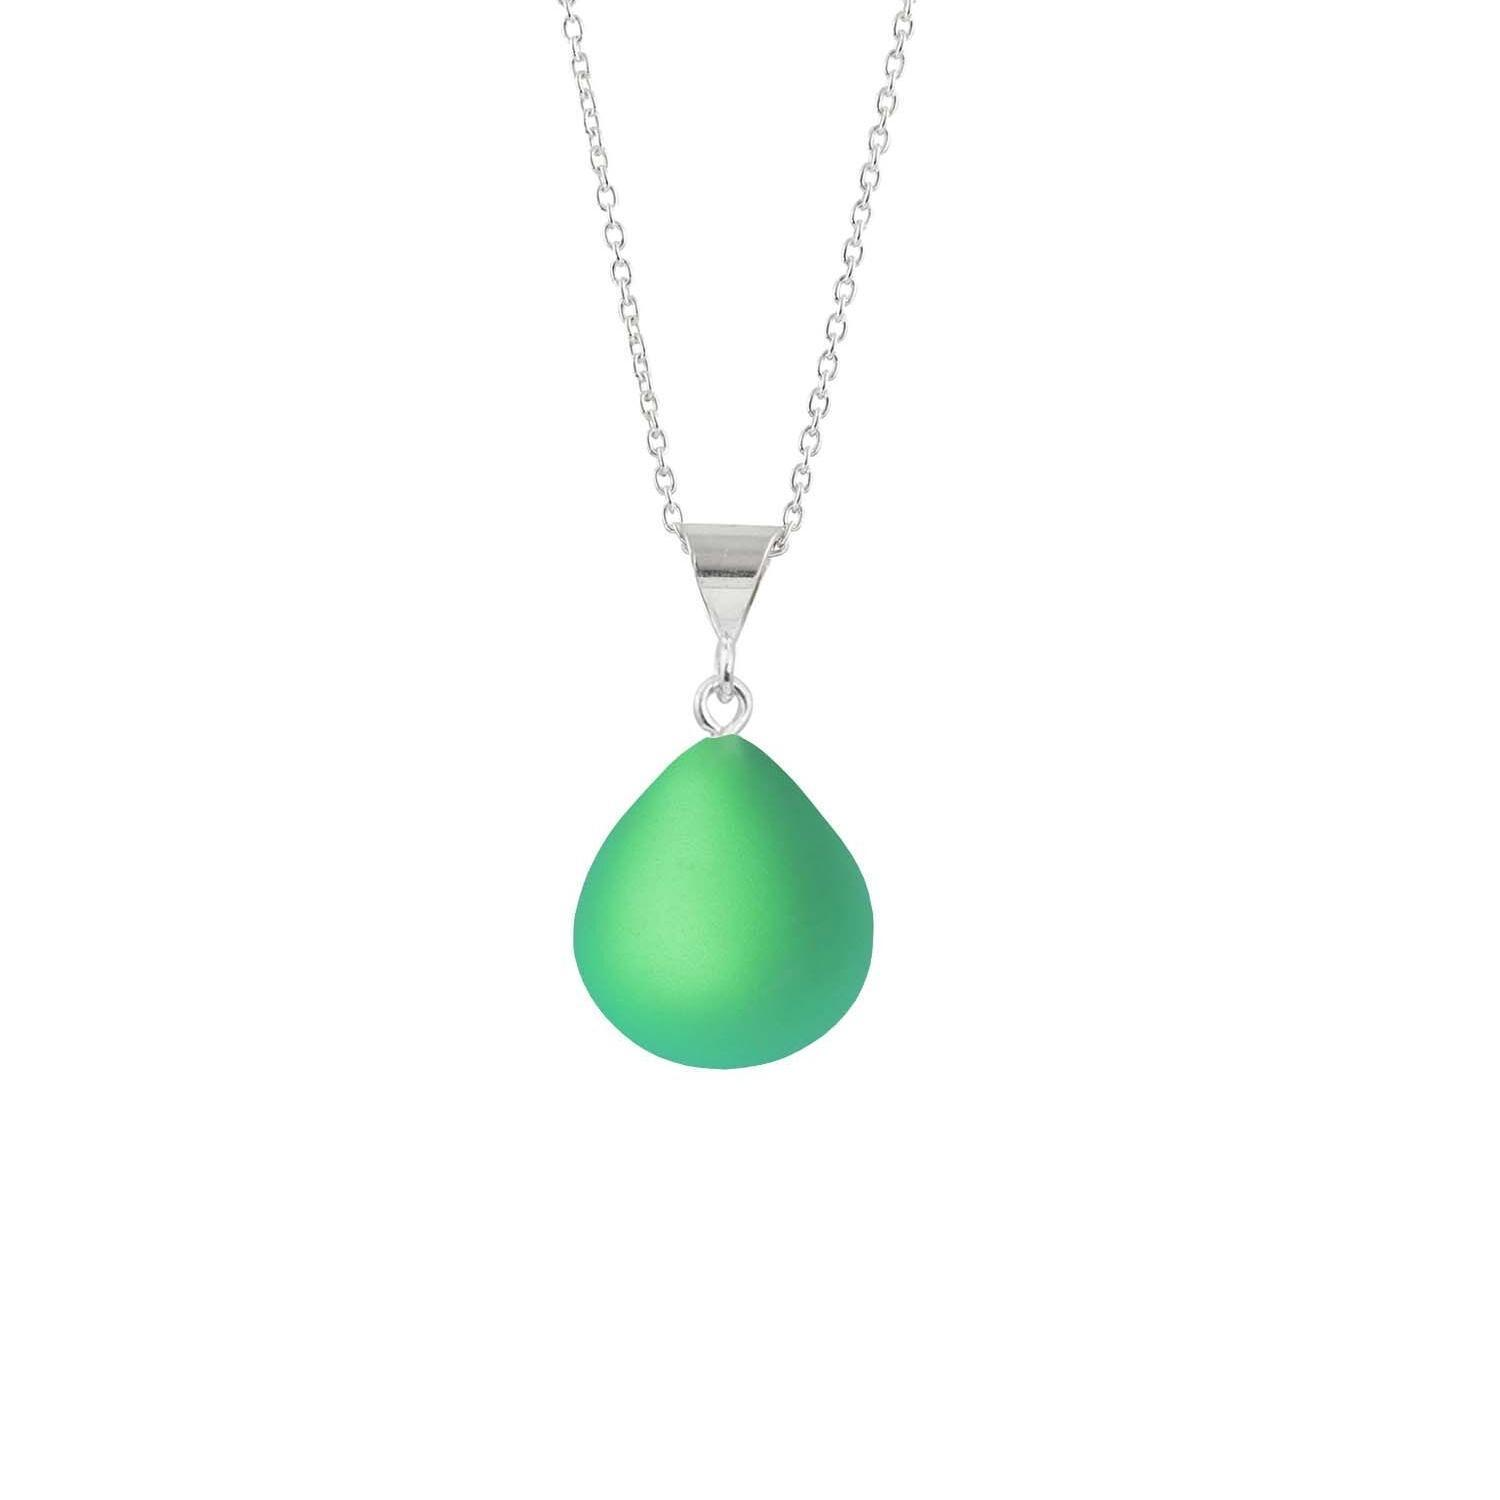 Leightworks Crystal Small Drop Pendant Frosted Green